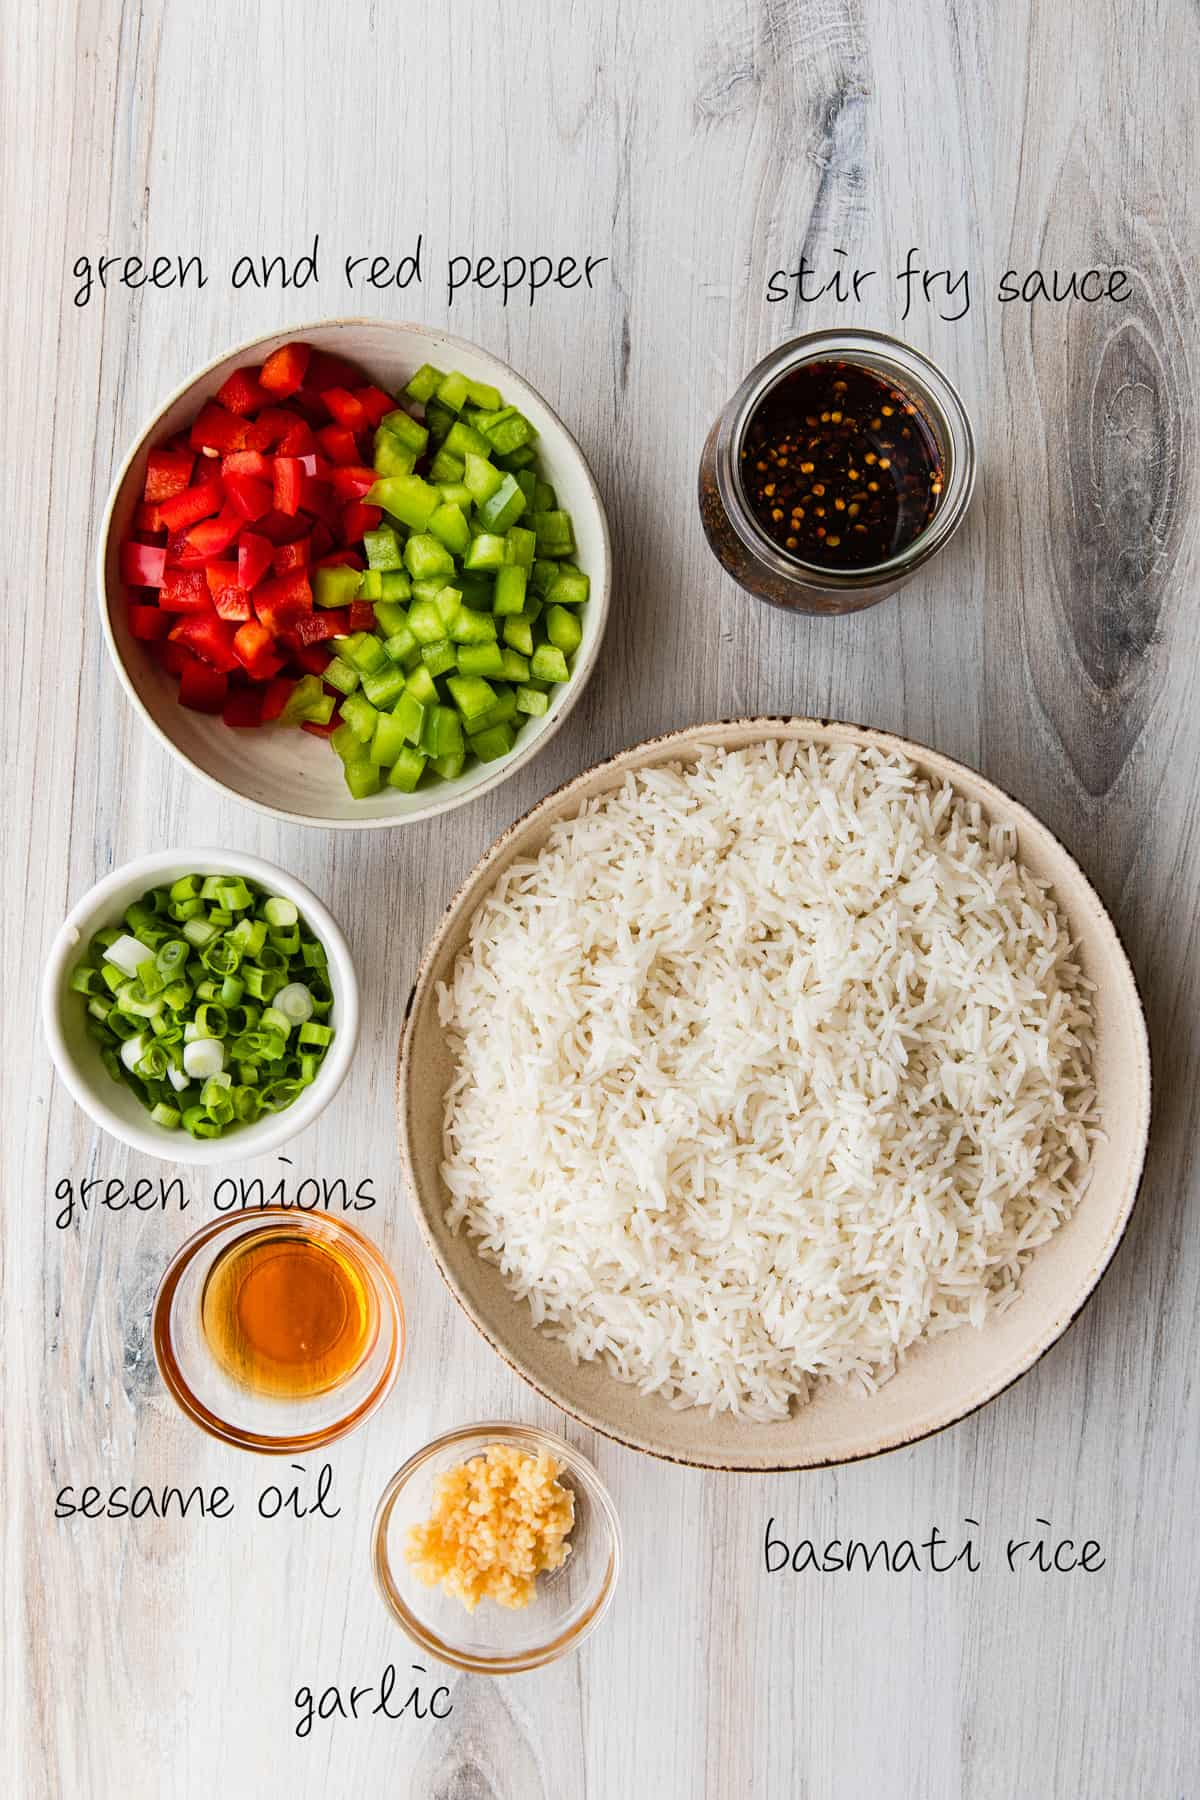 rice, green and red peppers, green onions, sesame oil, garlic, spices